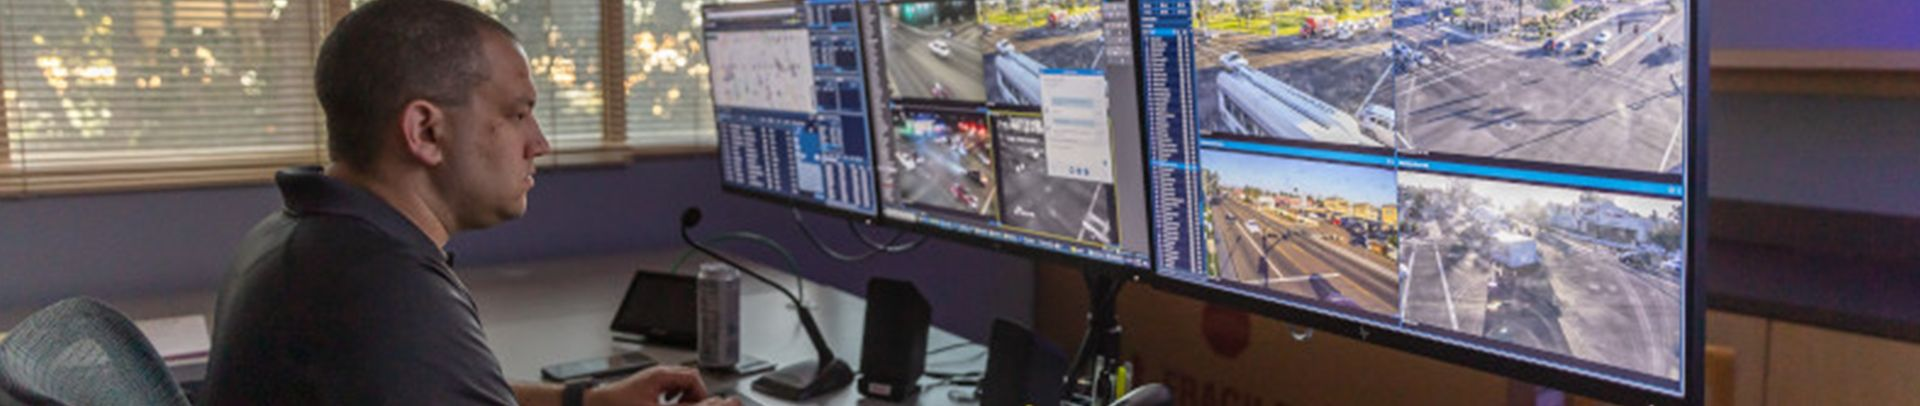 Glendale Police Real-Time Crime Center